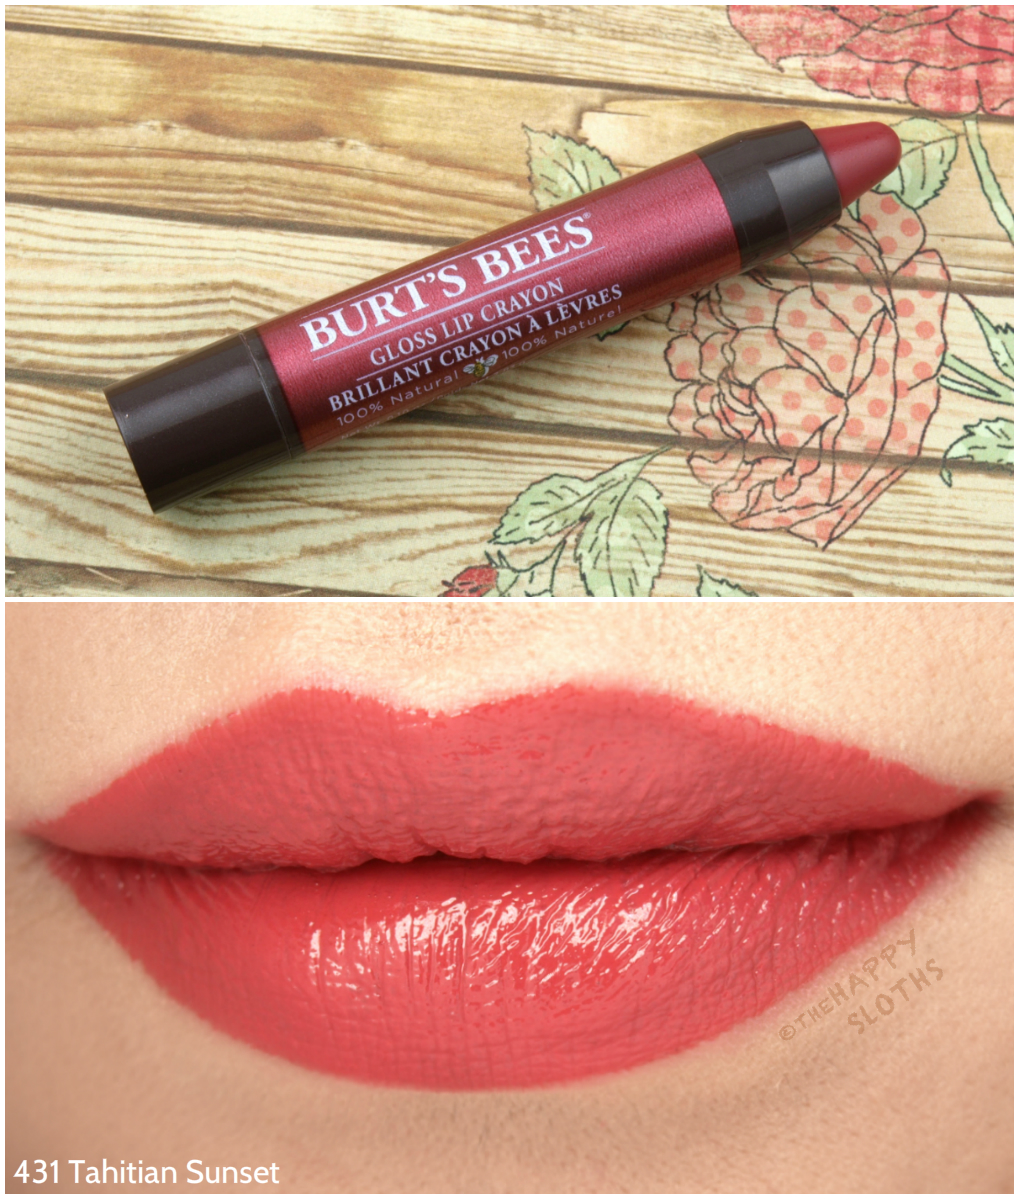 Burt's Bees Gloss Lip Crayon in 431 Tahitian Sunset: Review and Swatches